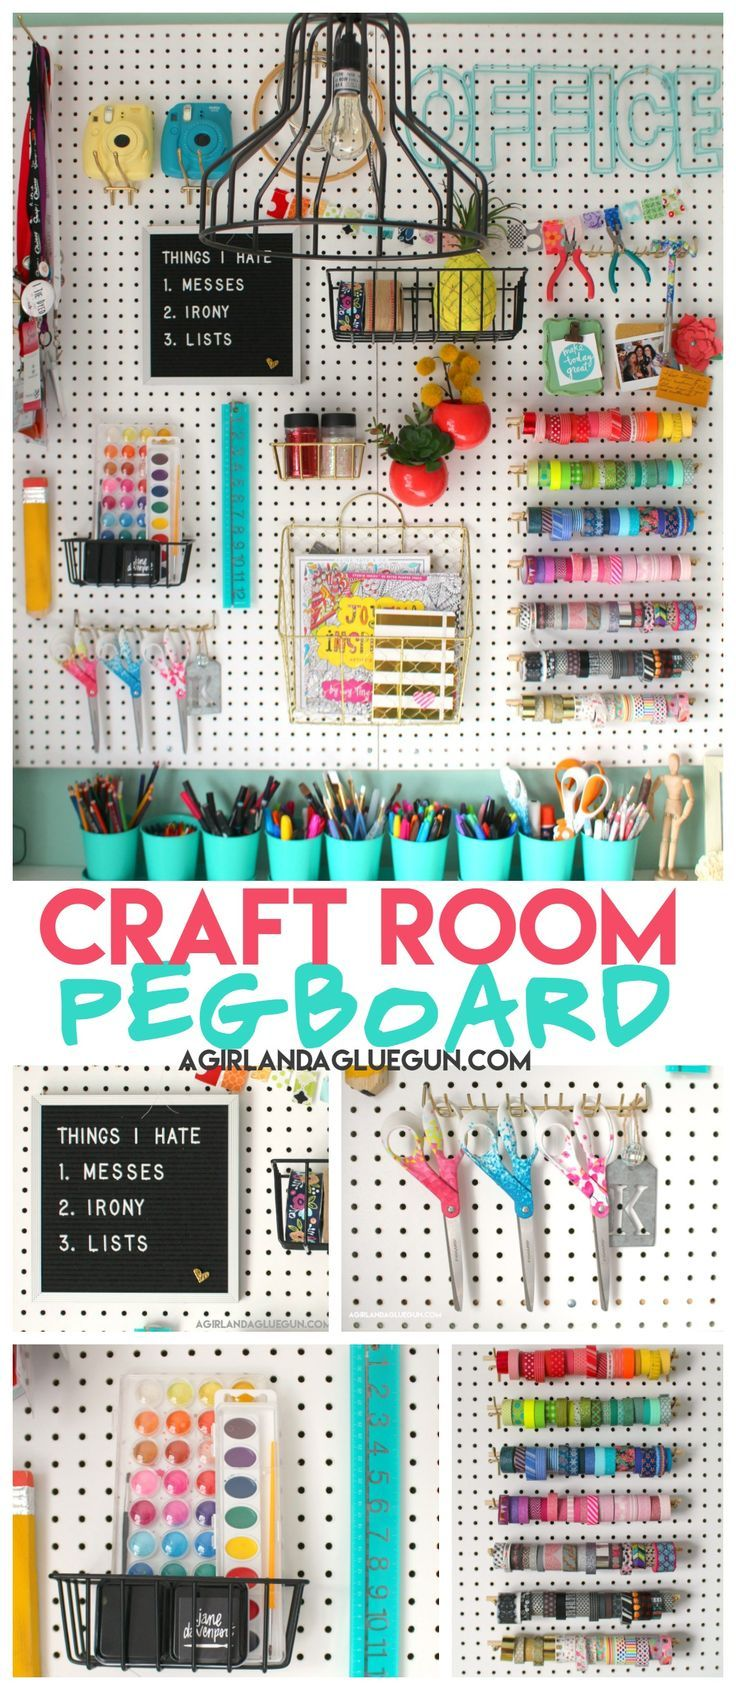 Organizing my craft room - A girl and a glue gun